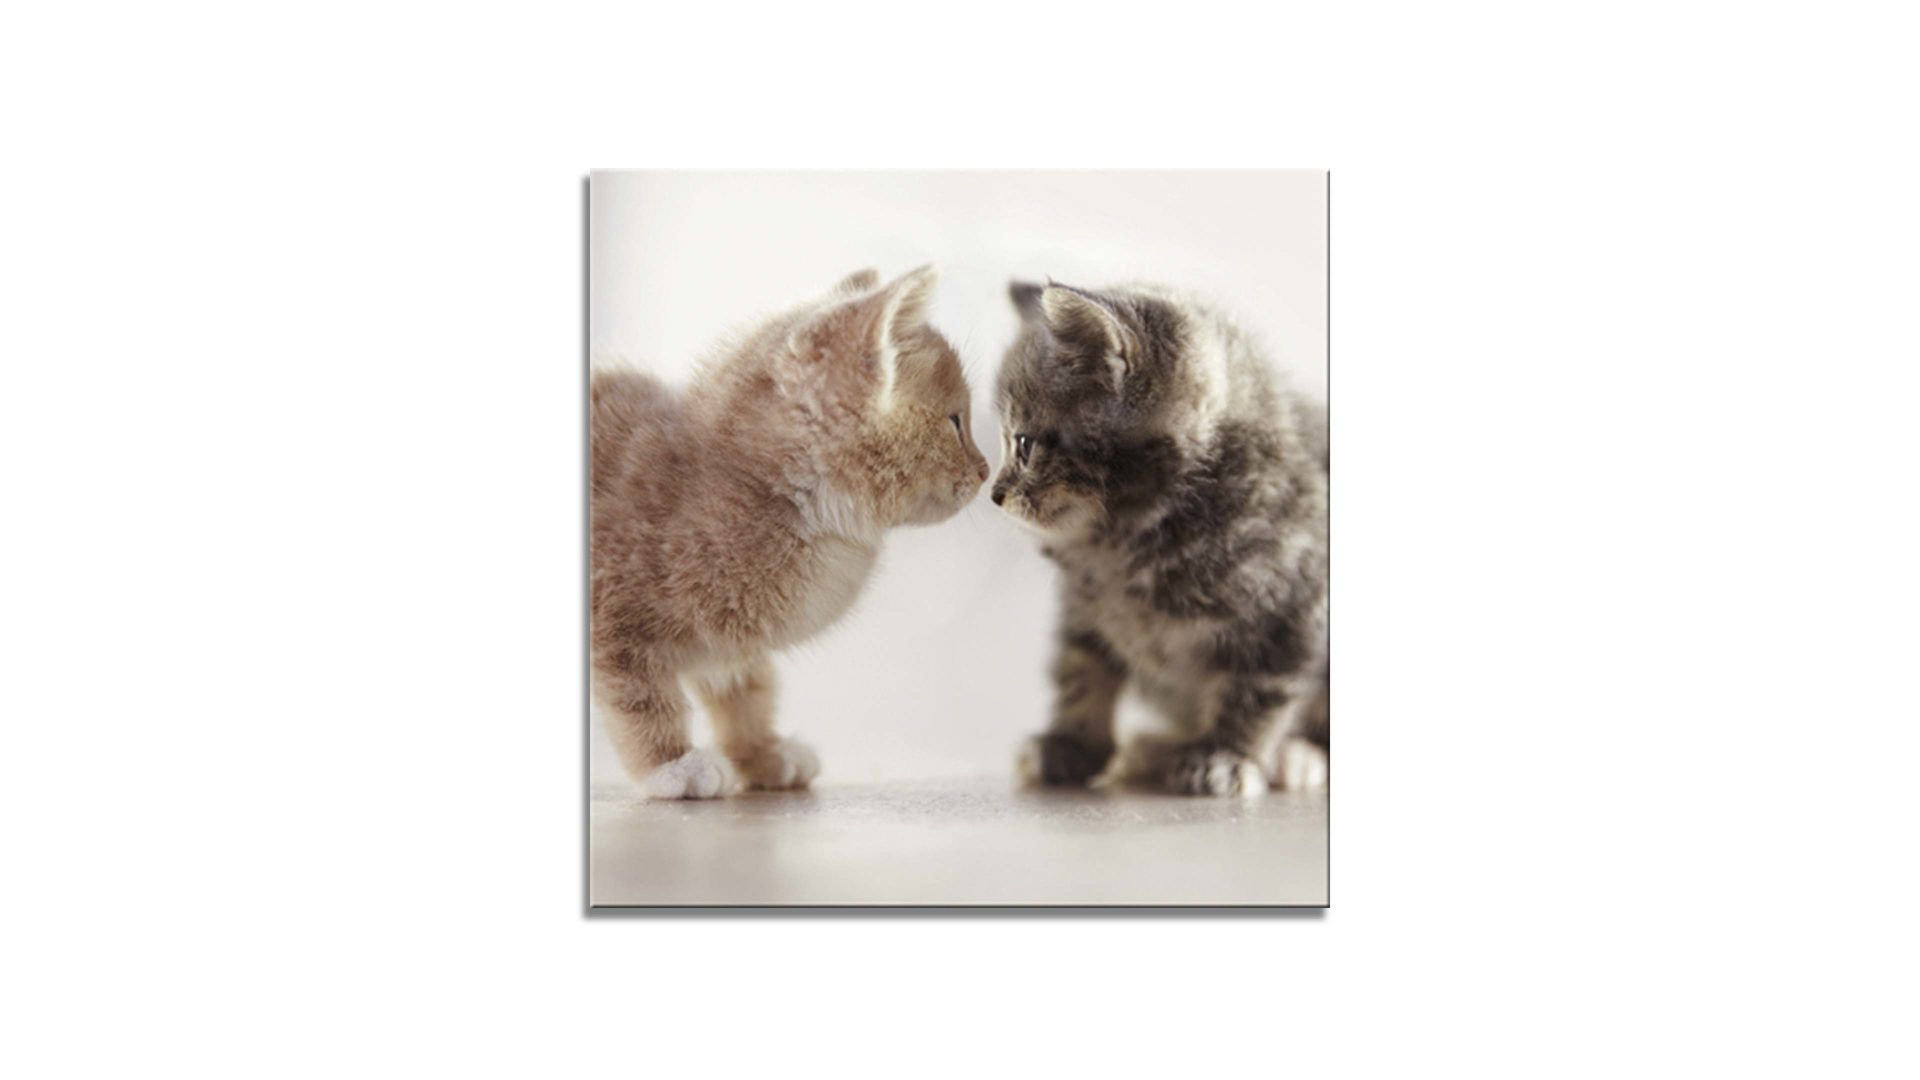 Glasbild Ars graphica aus Glas in Beige Glasbild Two Cats 4 mm Floatglas mit Motiv - ca. 30 x 30 cm